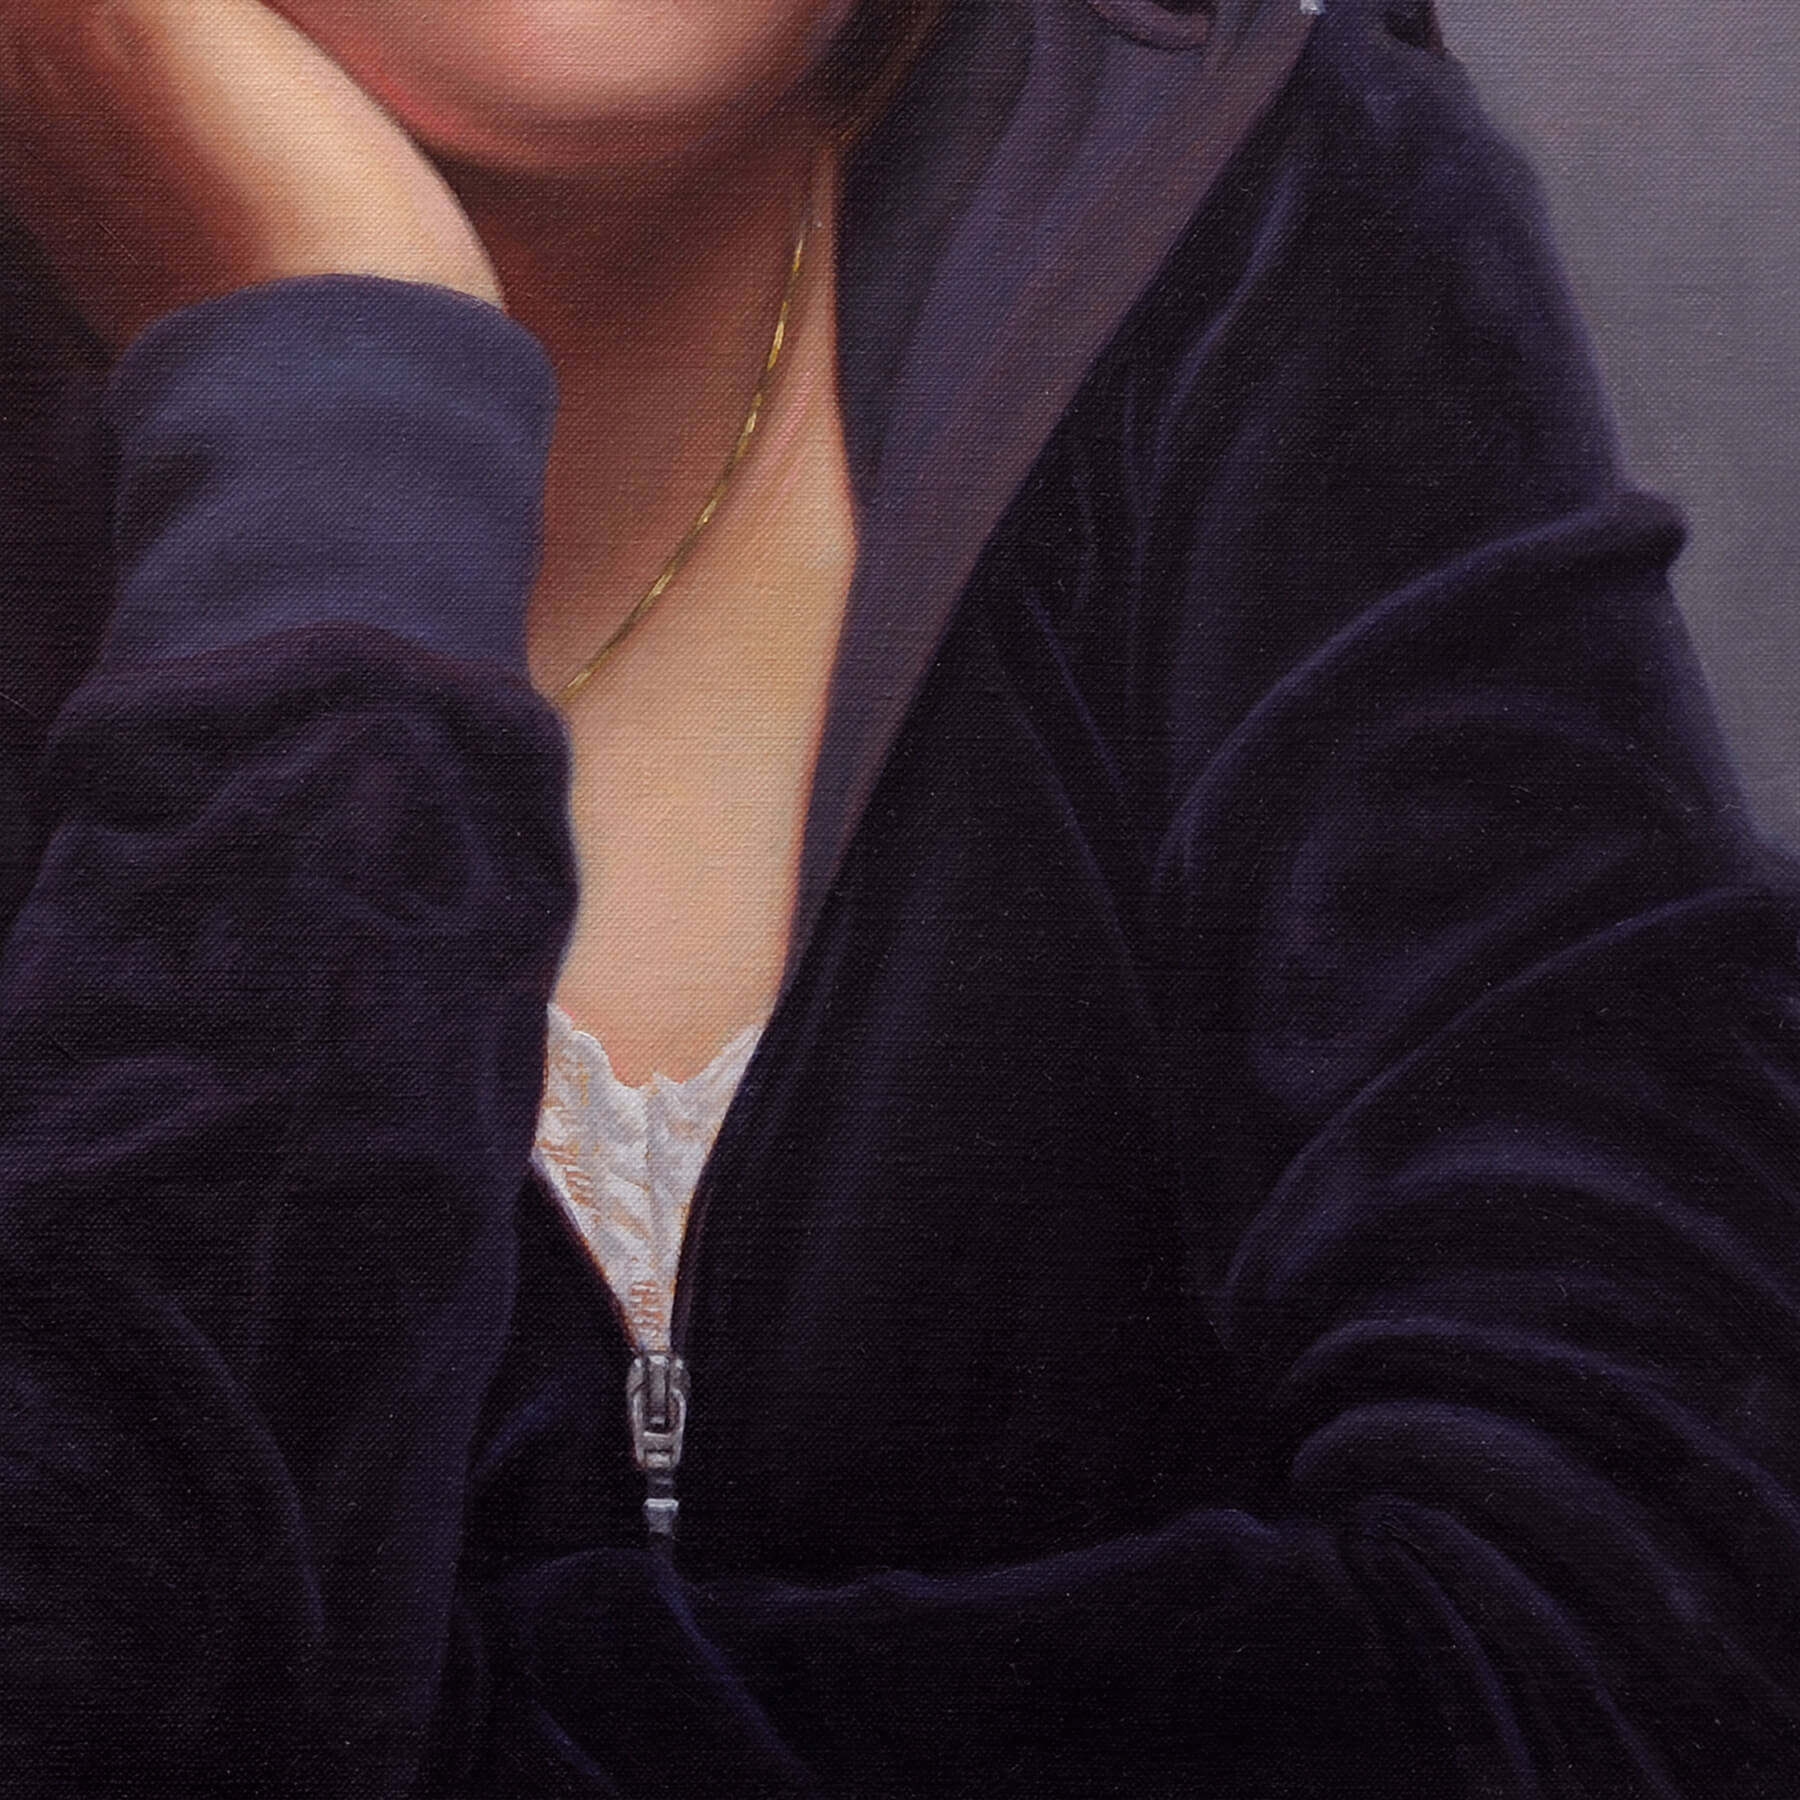 Clothing detail for Classical Oil Portrait of a Teenage Girl